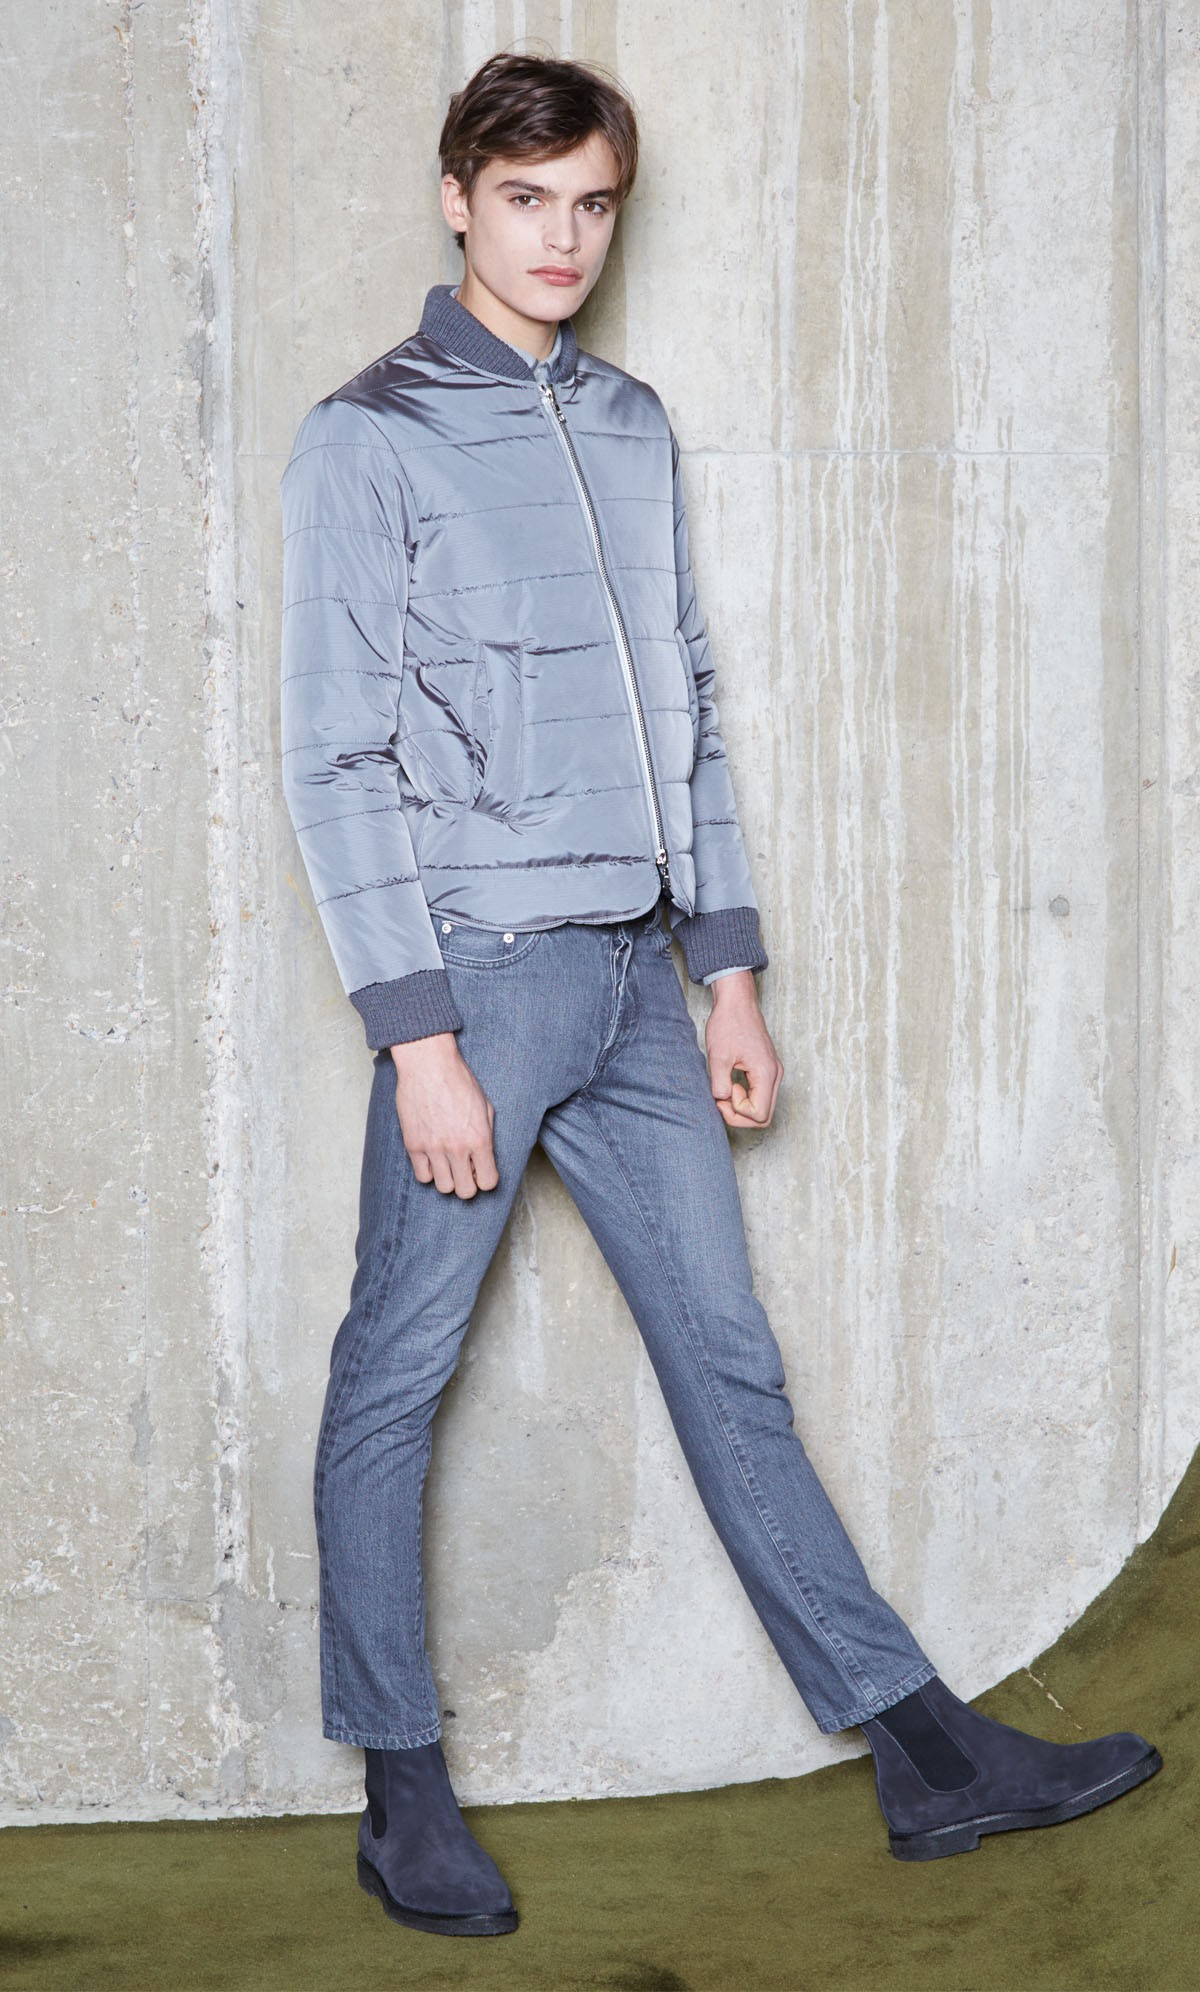 Officine Generale AW16